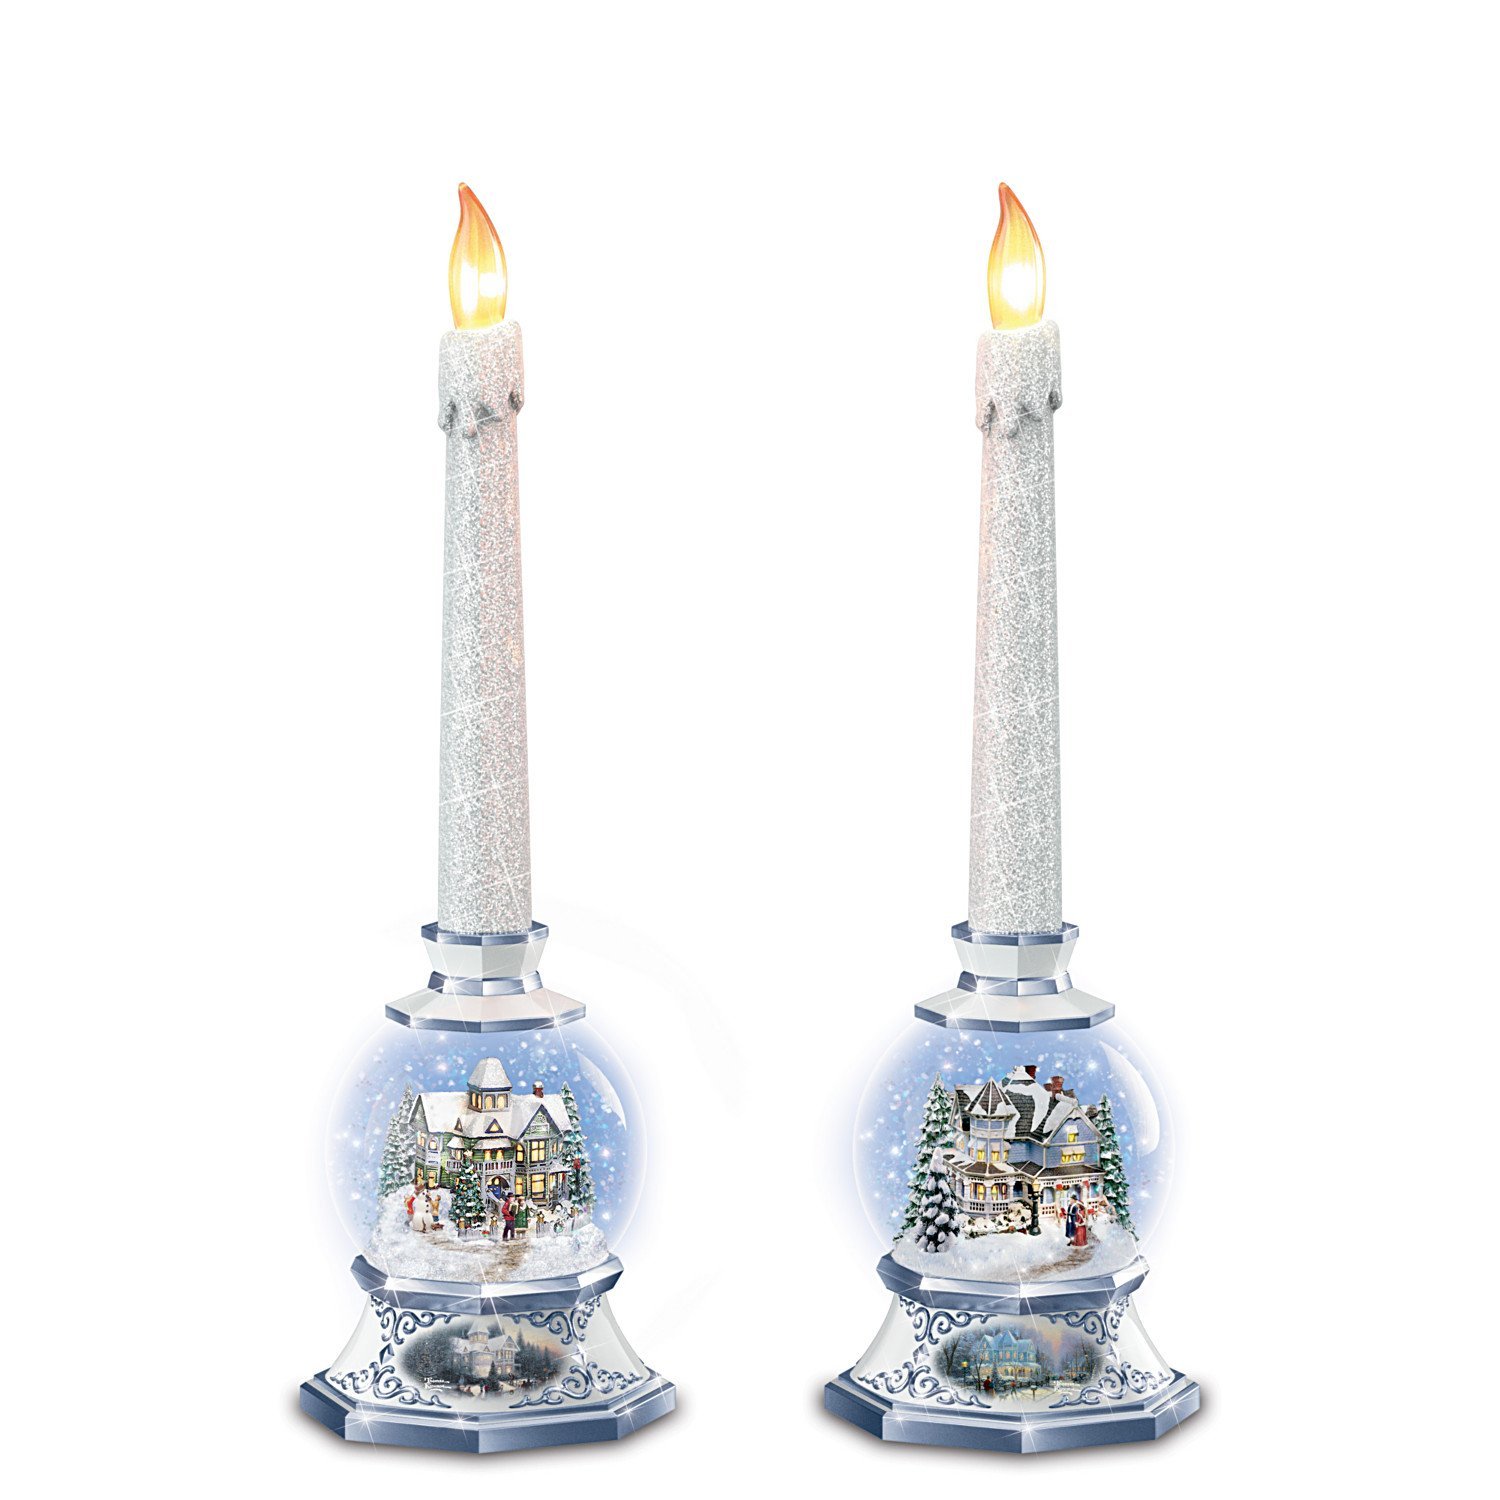 Image of Lighted Thomas Kinkade Victorian Christmas Snowglobe Candleholders